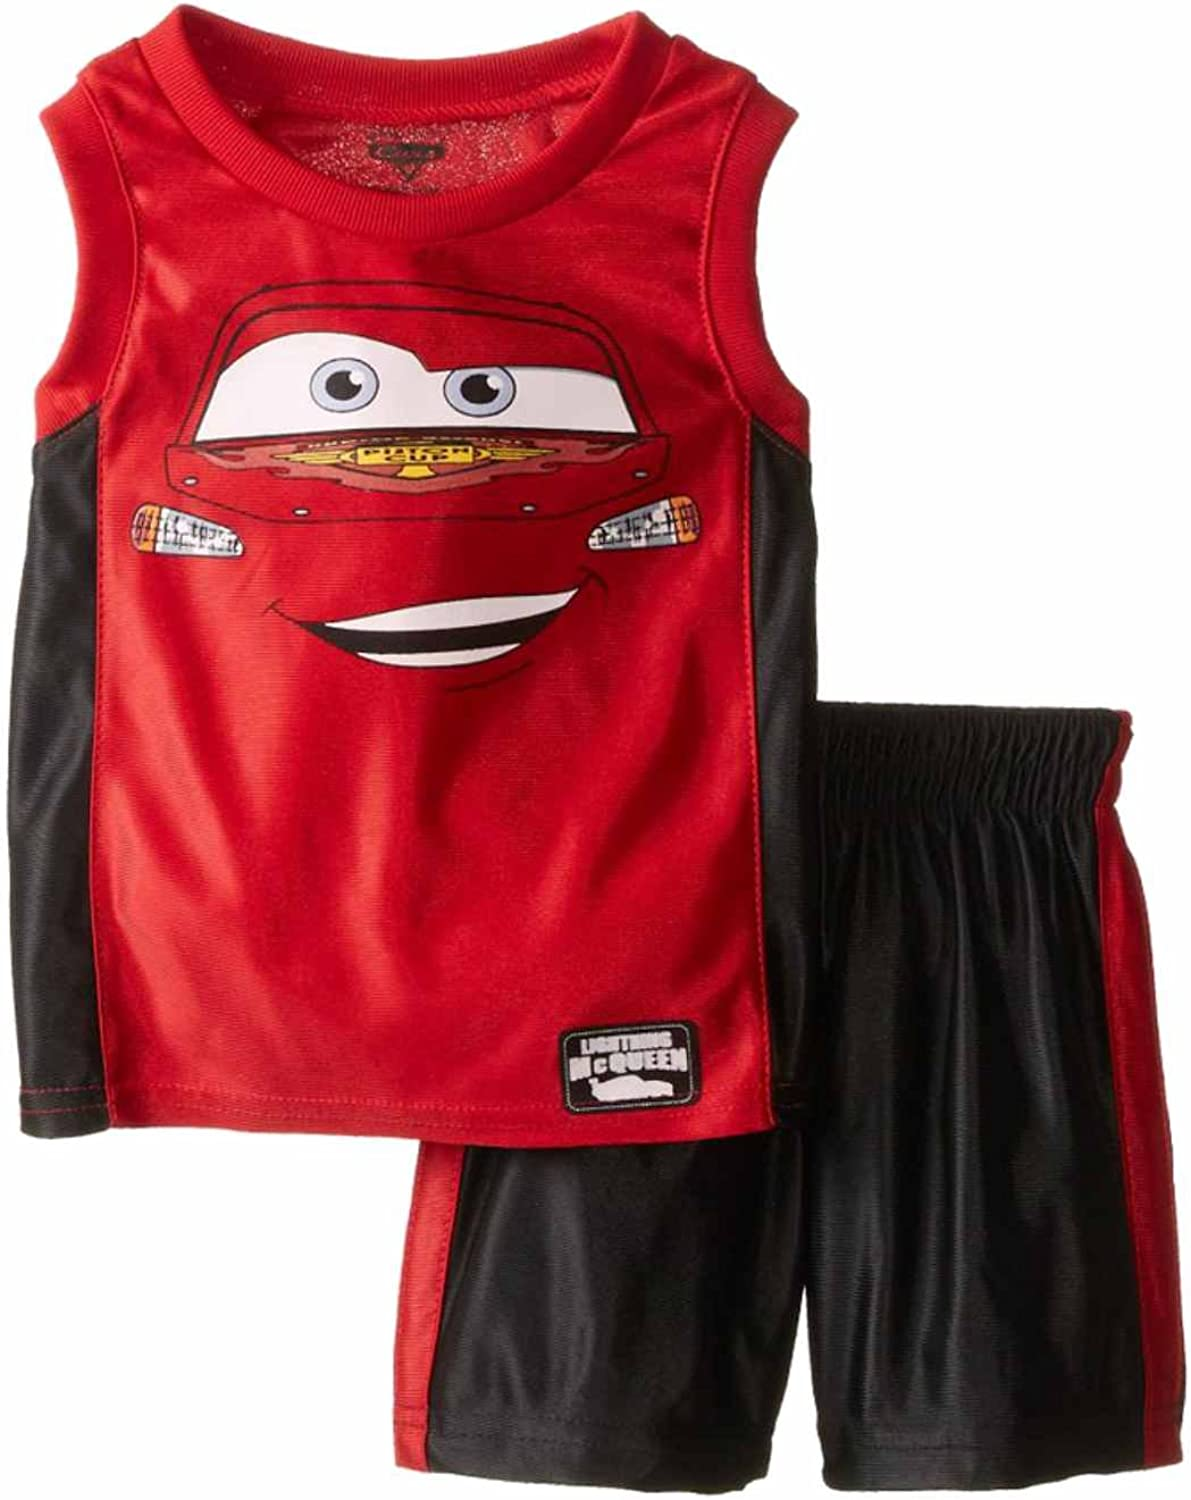 2 PIECE TANK AND SHORTS OUTFIT ADORABLE DISNEY CARS BOYS 3T